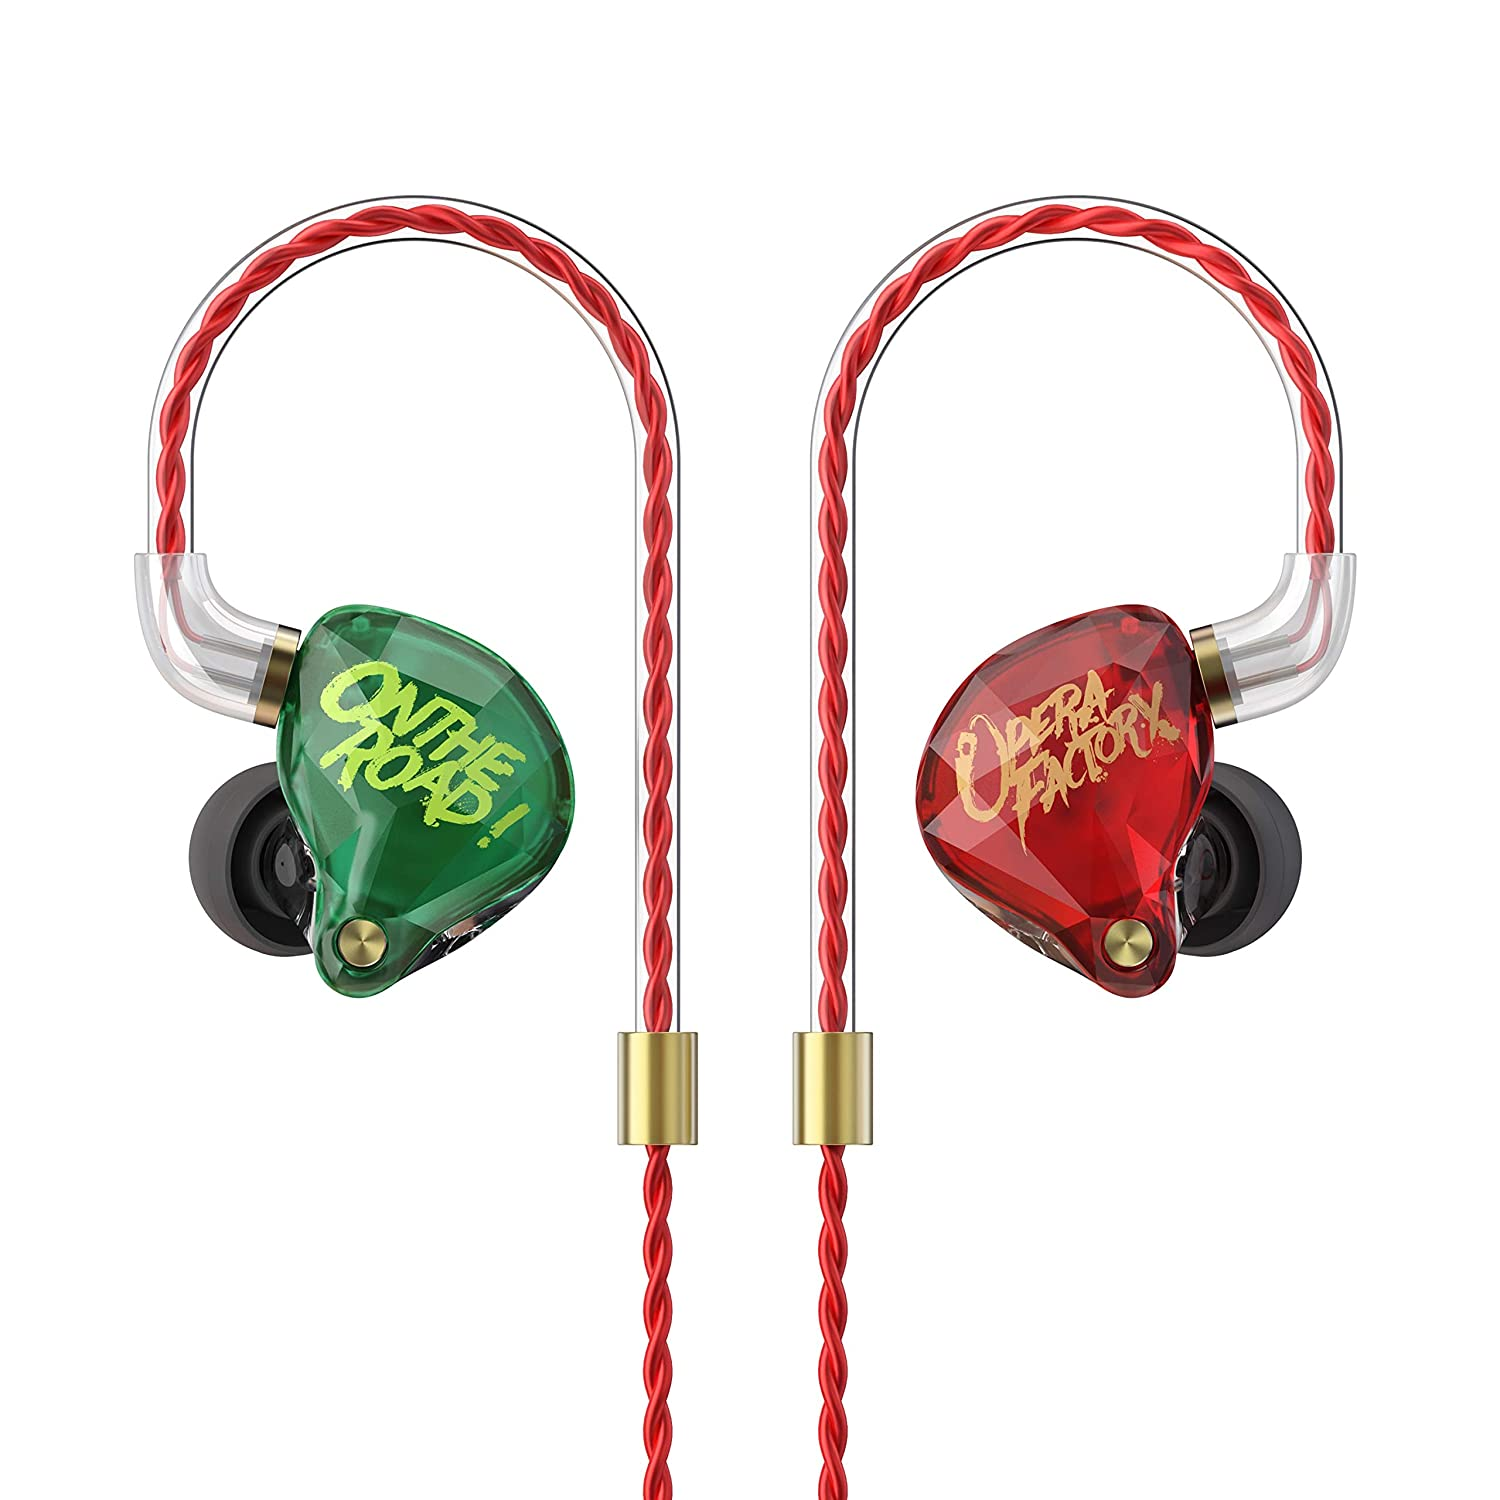 OperaFactory OM1 in ear headphones, Noise-Isolating In Ear Monitors,Hi-fidelity Stage Earphones,Wired metal headset Tri-frequency alignment With 2 Pin Detachable Cable Natural Sound Earbuds-With Mic Better